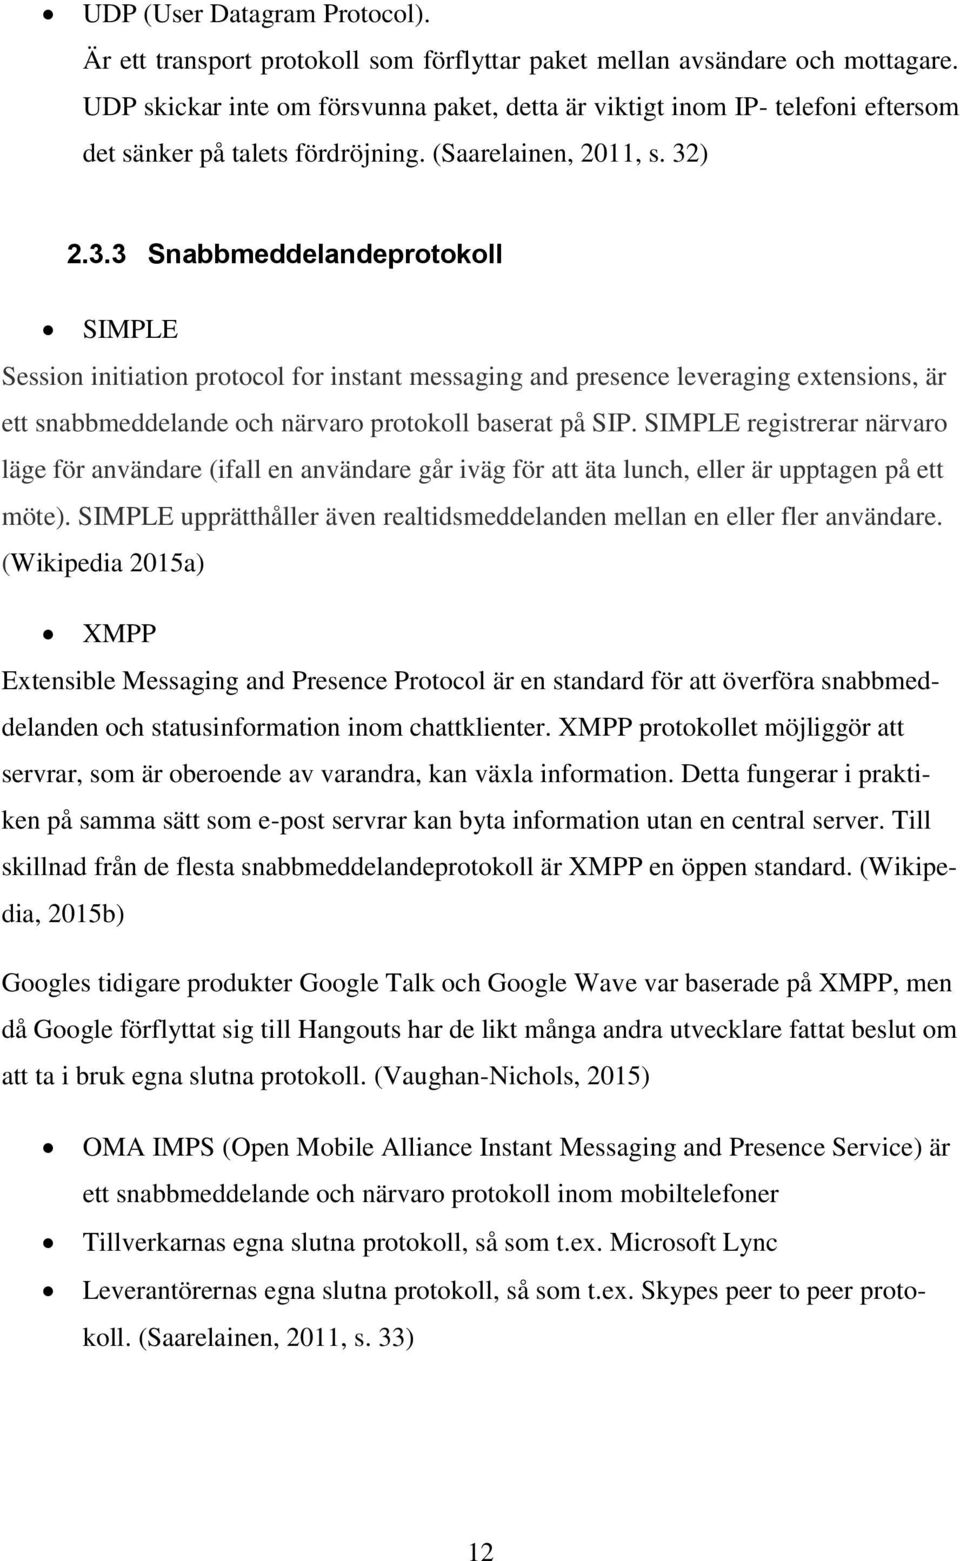 ) 2.3.3 Snabbmeddelandeprotokoll SIMPLE Session initiation protocol for instant messaging and presence leveraging extensions, är ett snabbmeddelande och närvaro protokoll baserat på SIP.